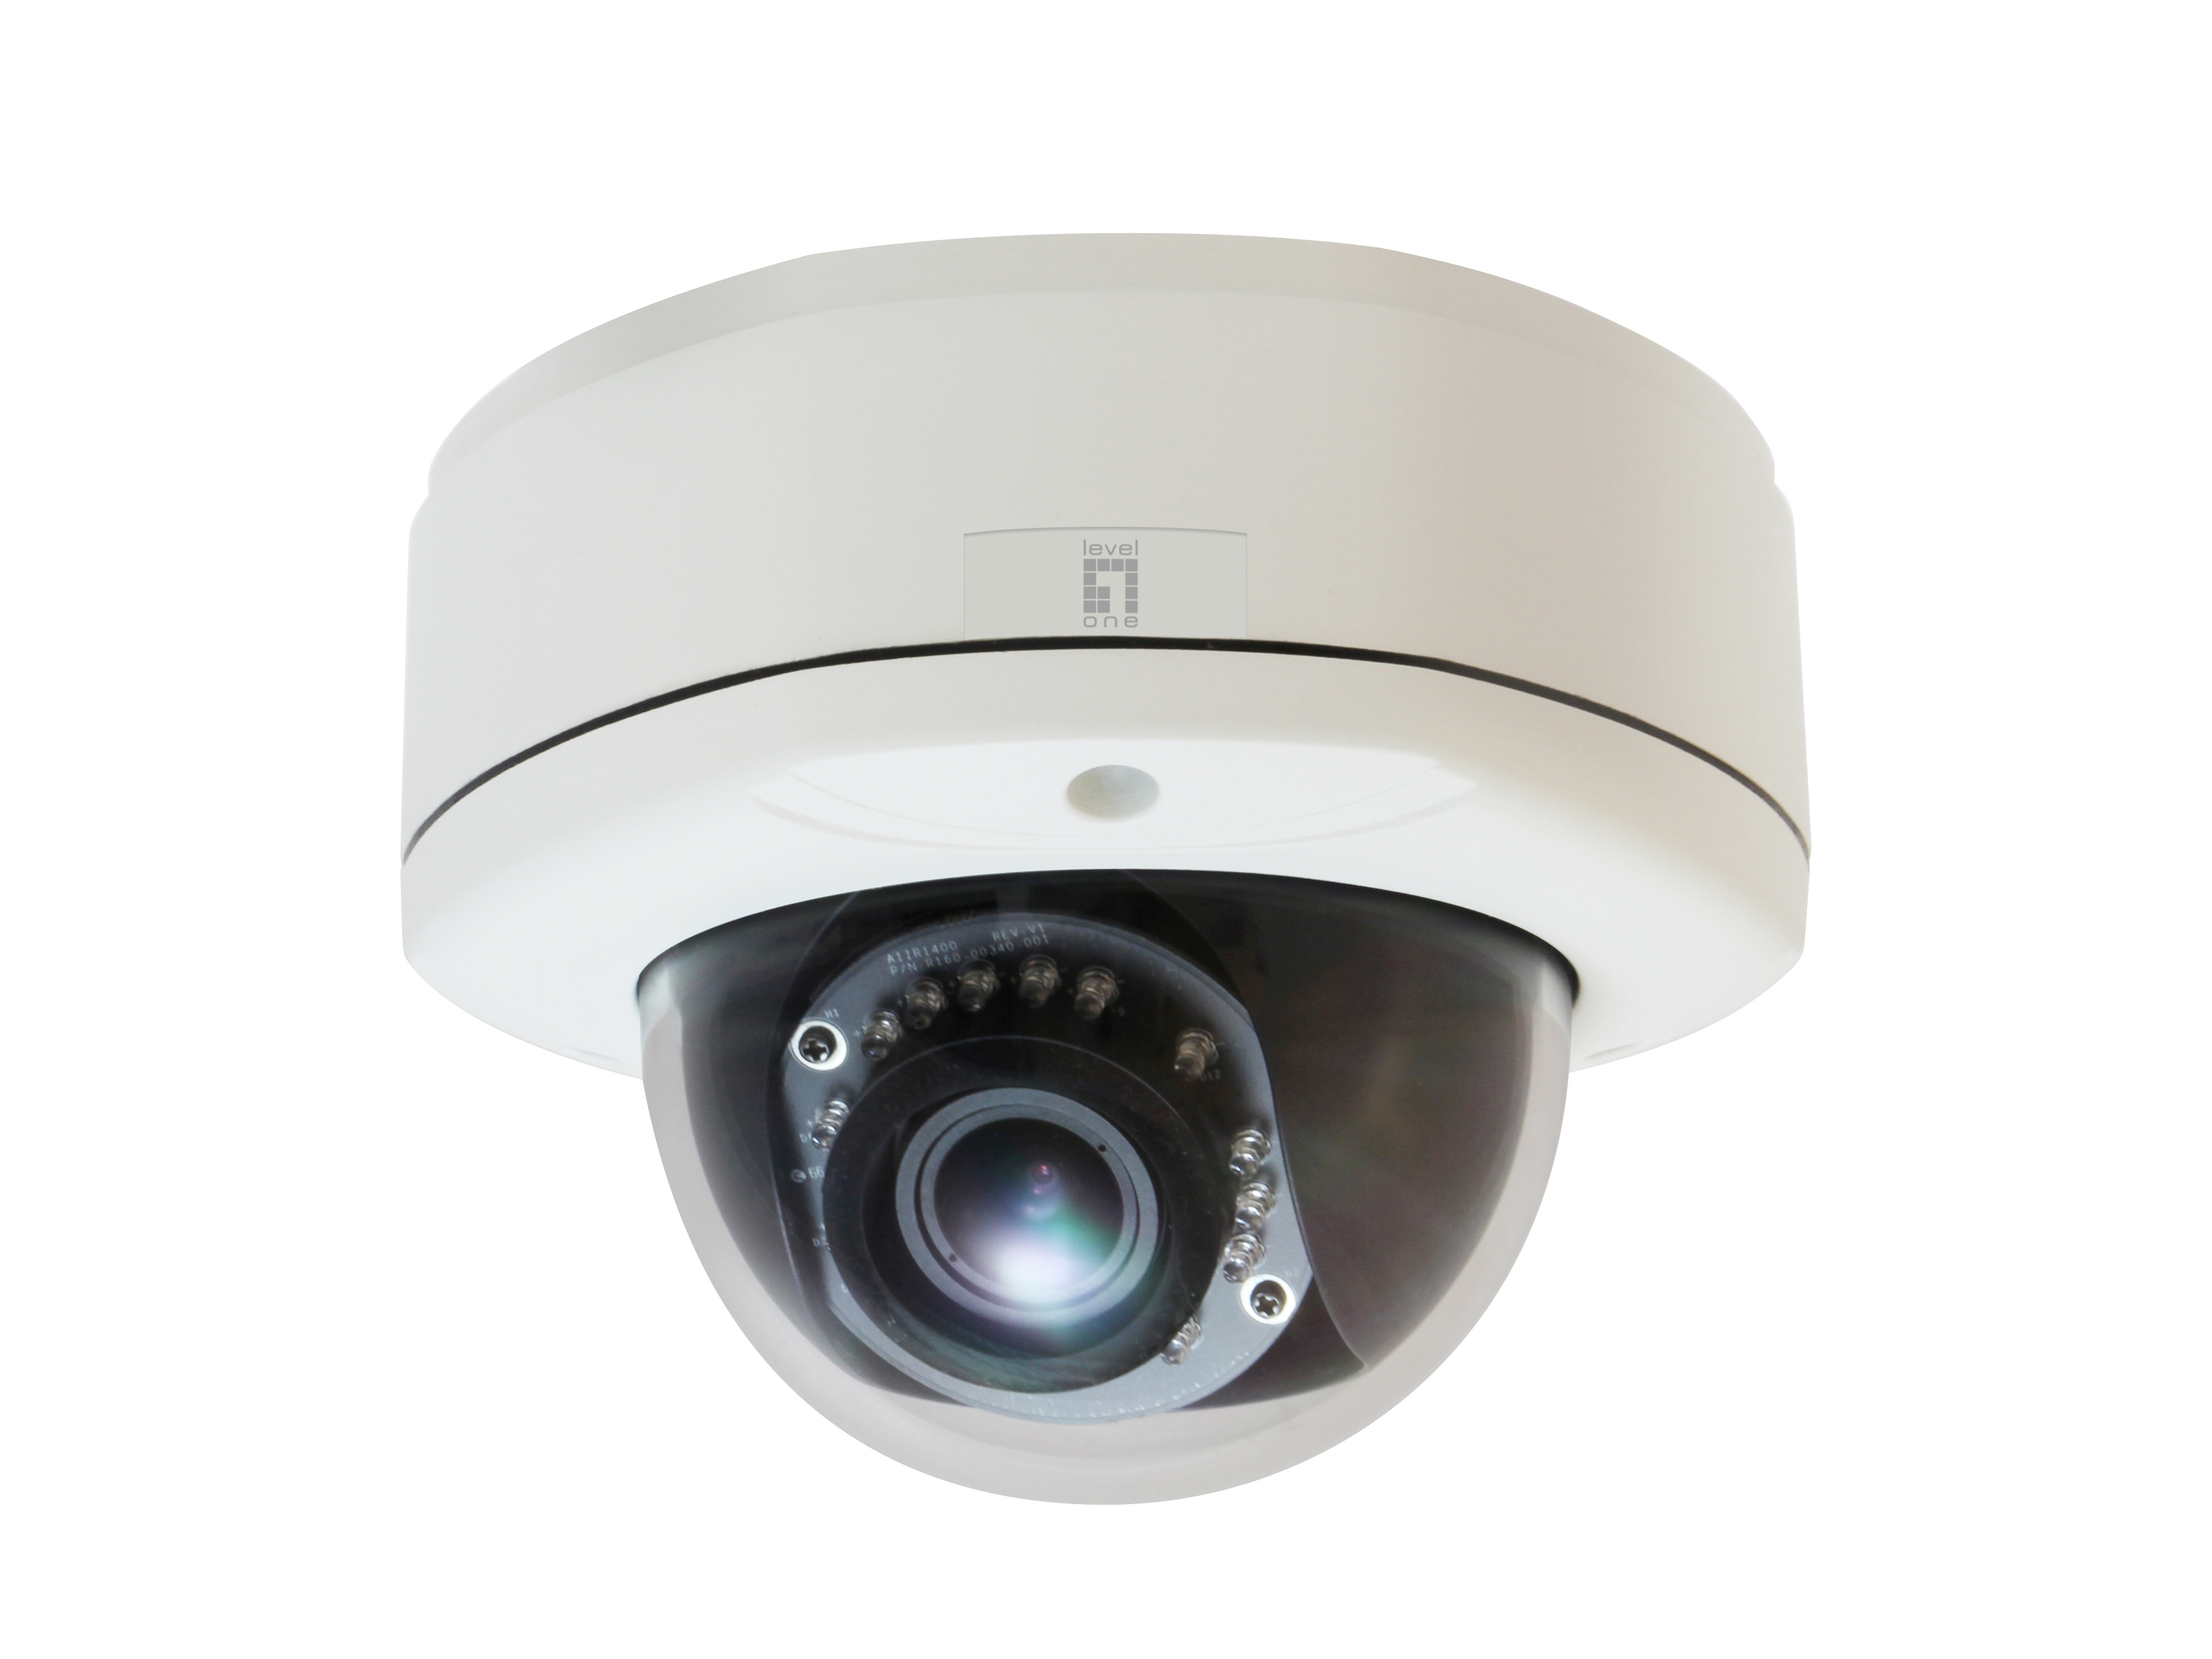 LevelOne Fixed Dome Network Camera - 3-Megapixel - Outdoor - PoE 802.3af - Day & Night - IR LEDs - WDR